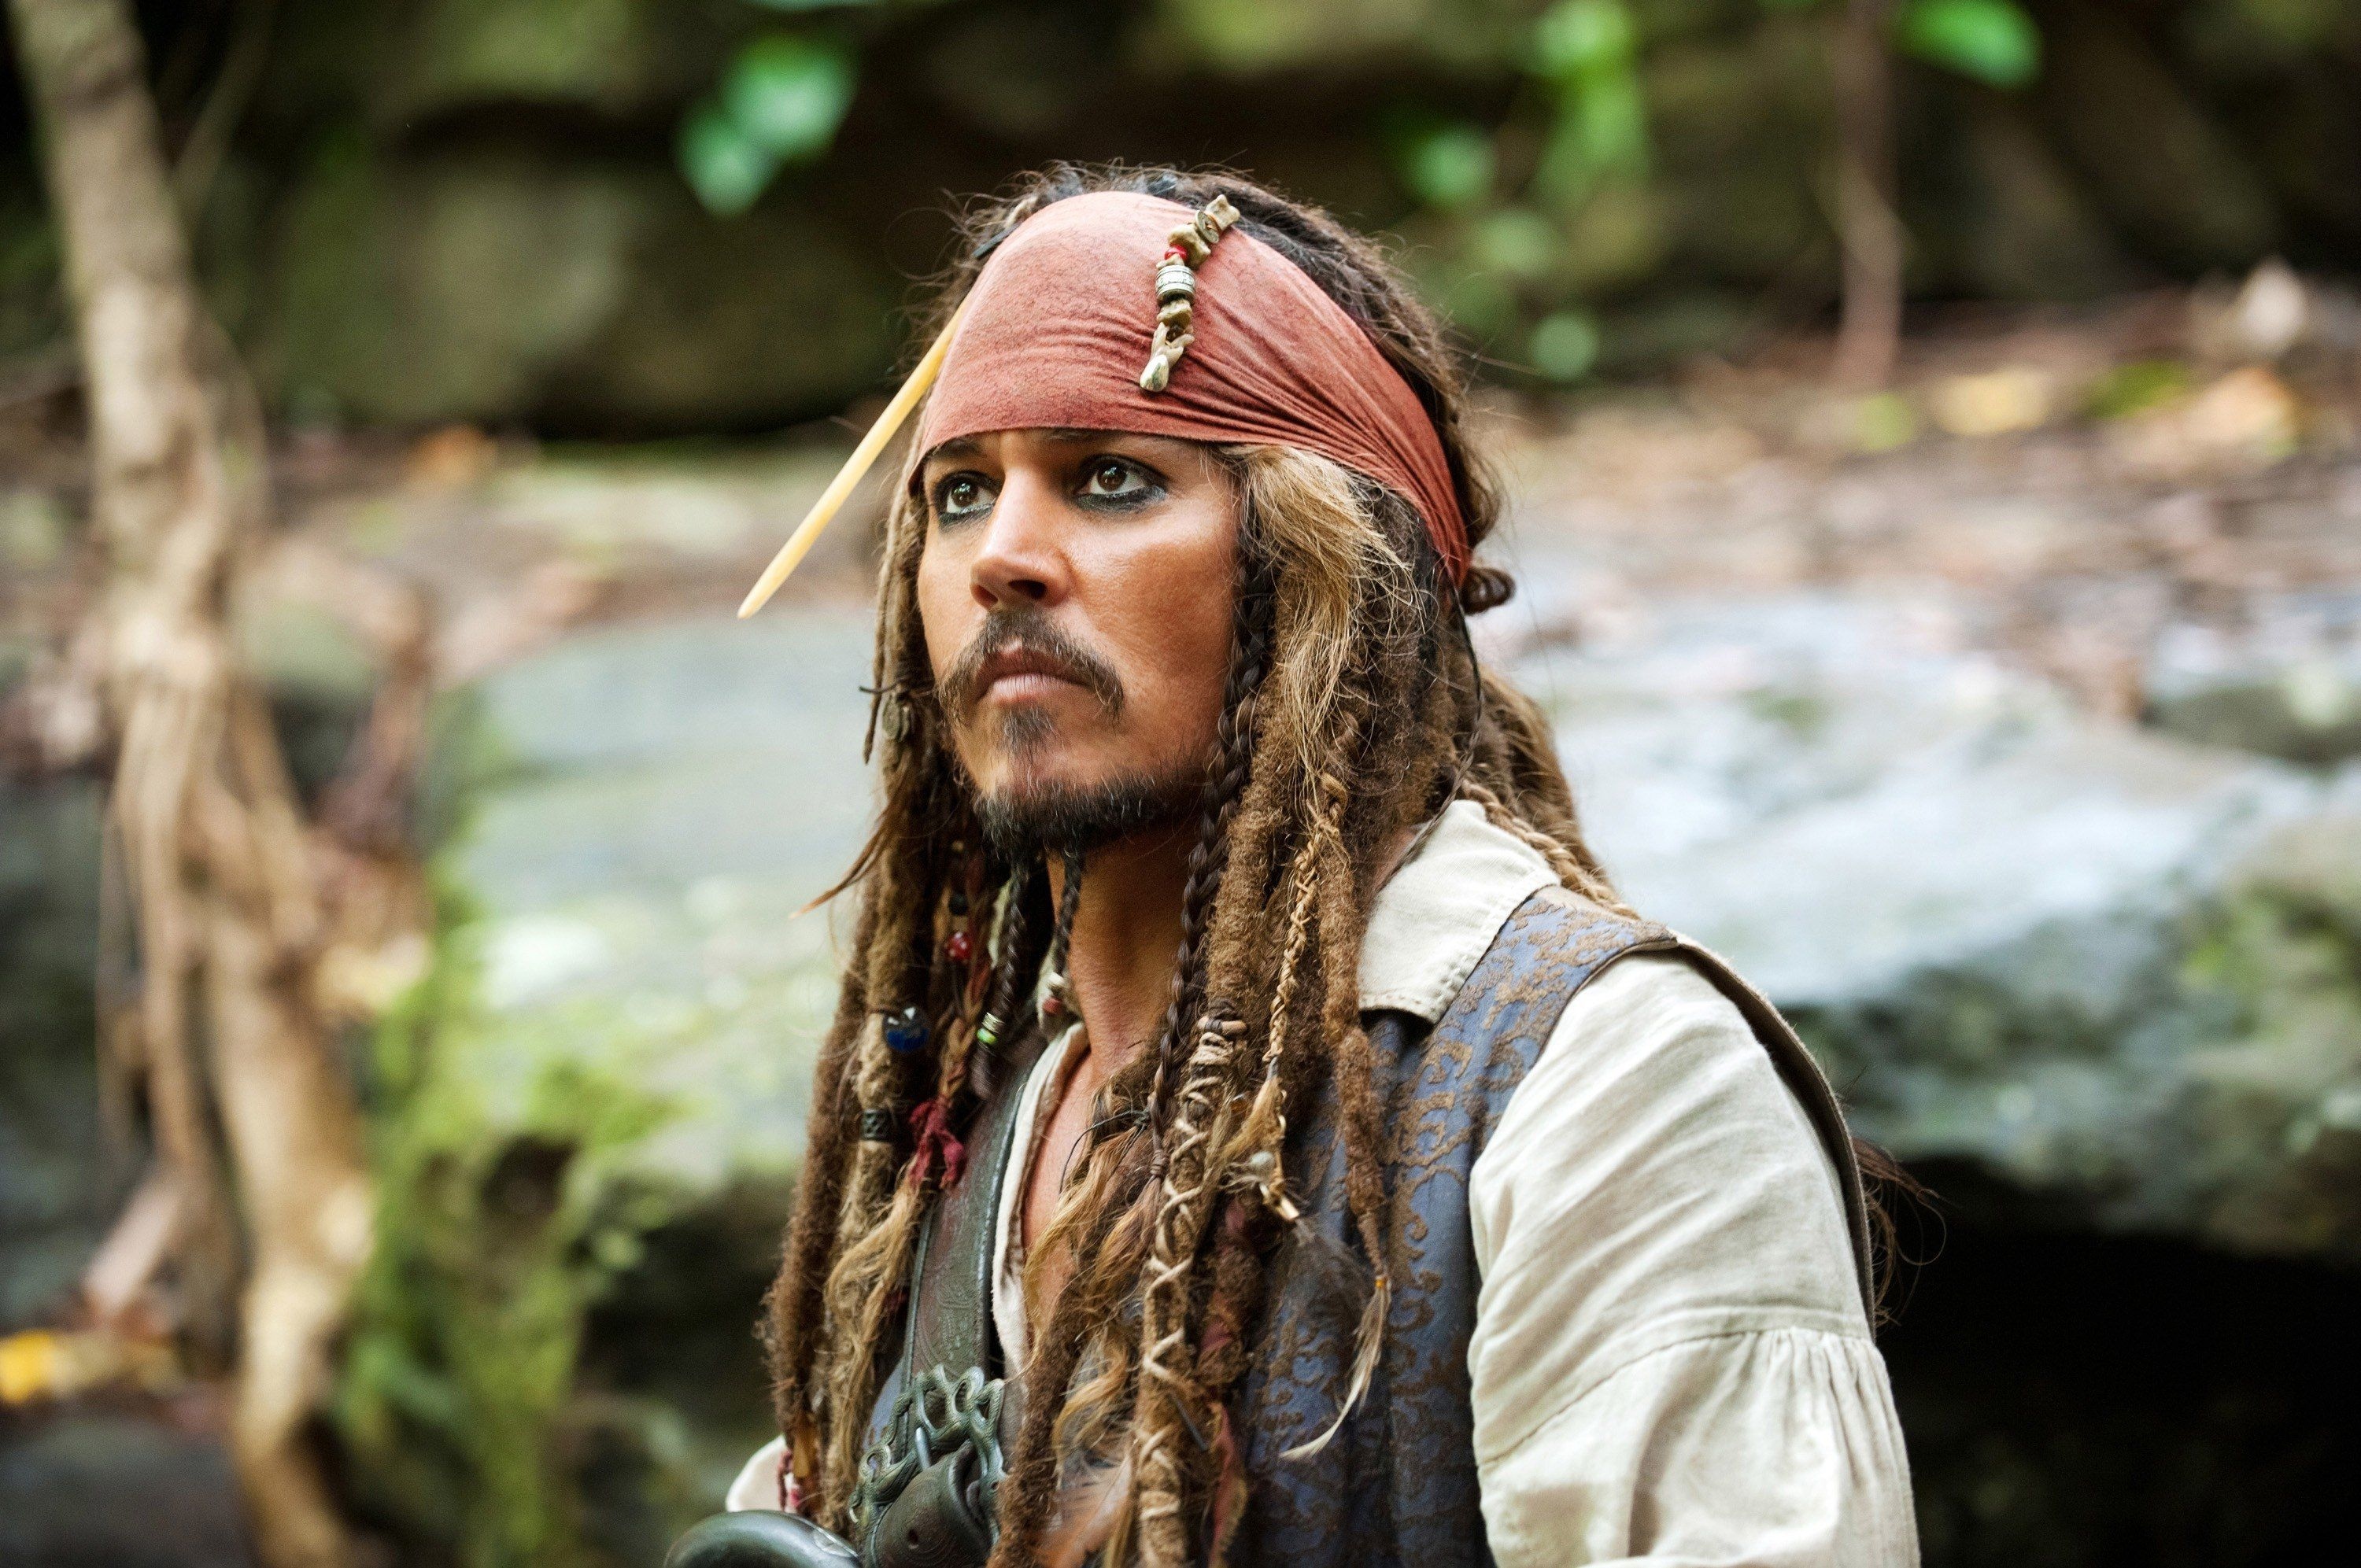 Hackers Have Reportedly Stolen A Digital Copy Of The New Pirates Of The Caribbean